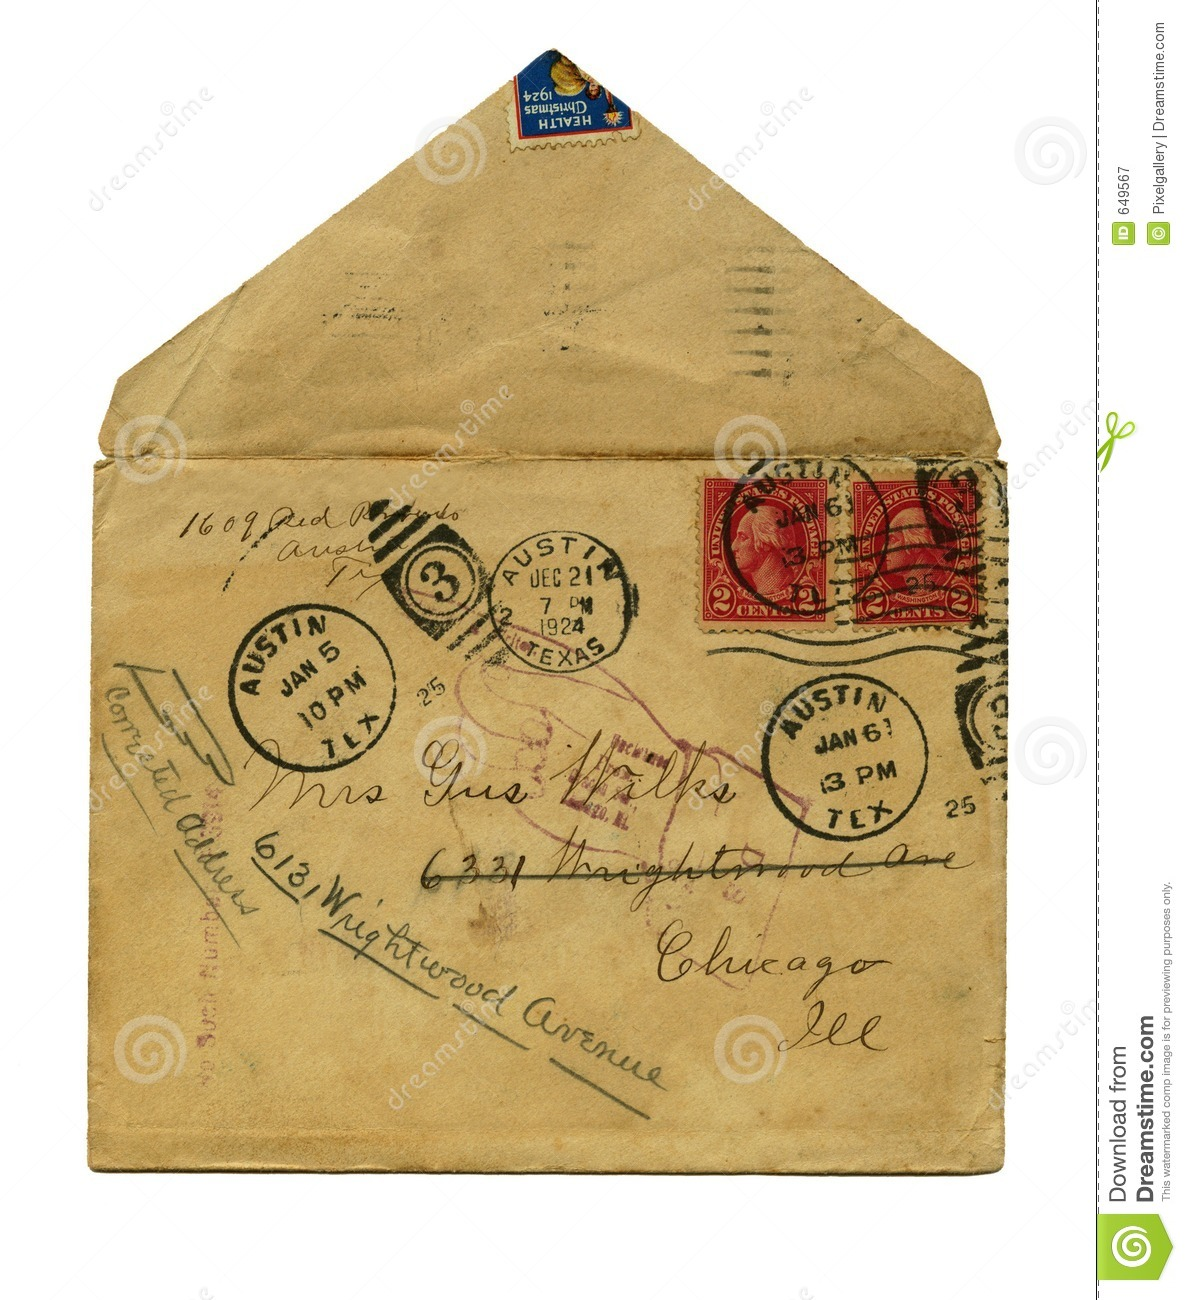 ... and return to sender stamp. Has old Christmas seal stamp at top